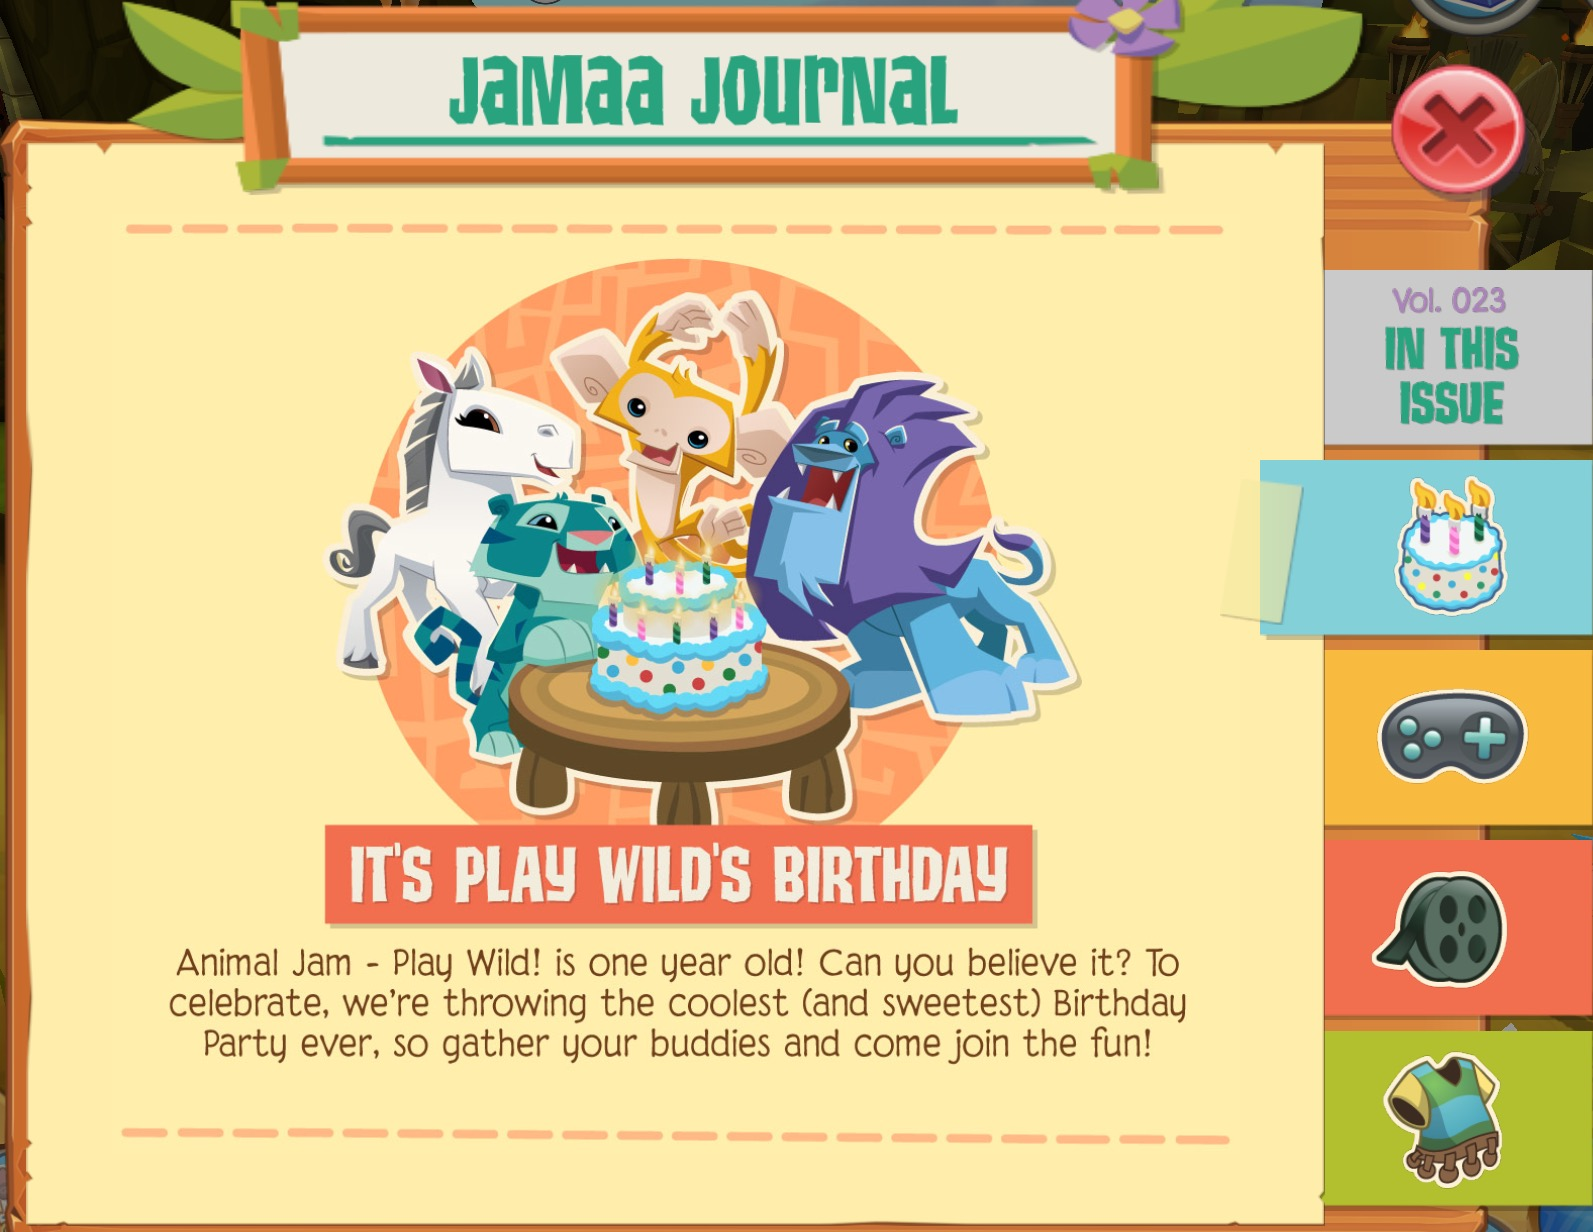 Image of: Cheetah Sim Also Today On August 10th Animal Jams 3d World Is Celebrating Its First Birthday technically The Beta Testing For It Started Around In June Animal Jam Graphic Central Animal Jam Graphic Central New Play Wild Update